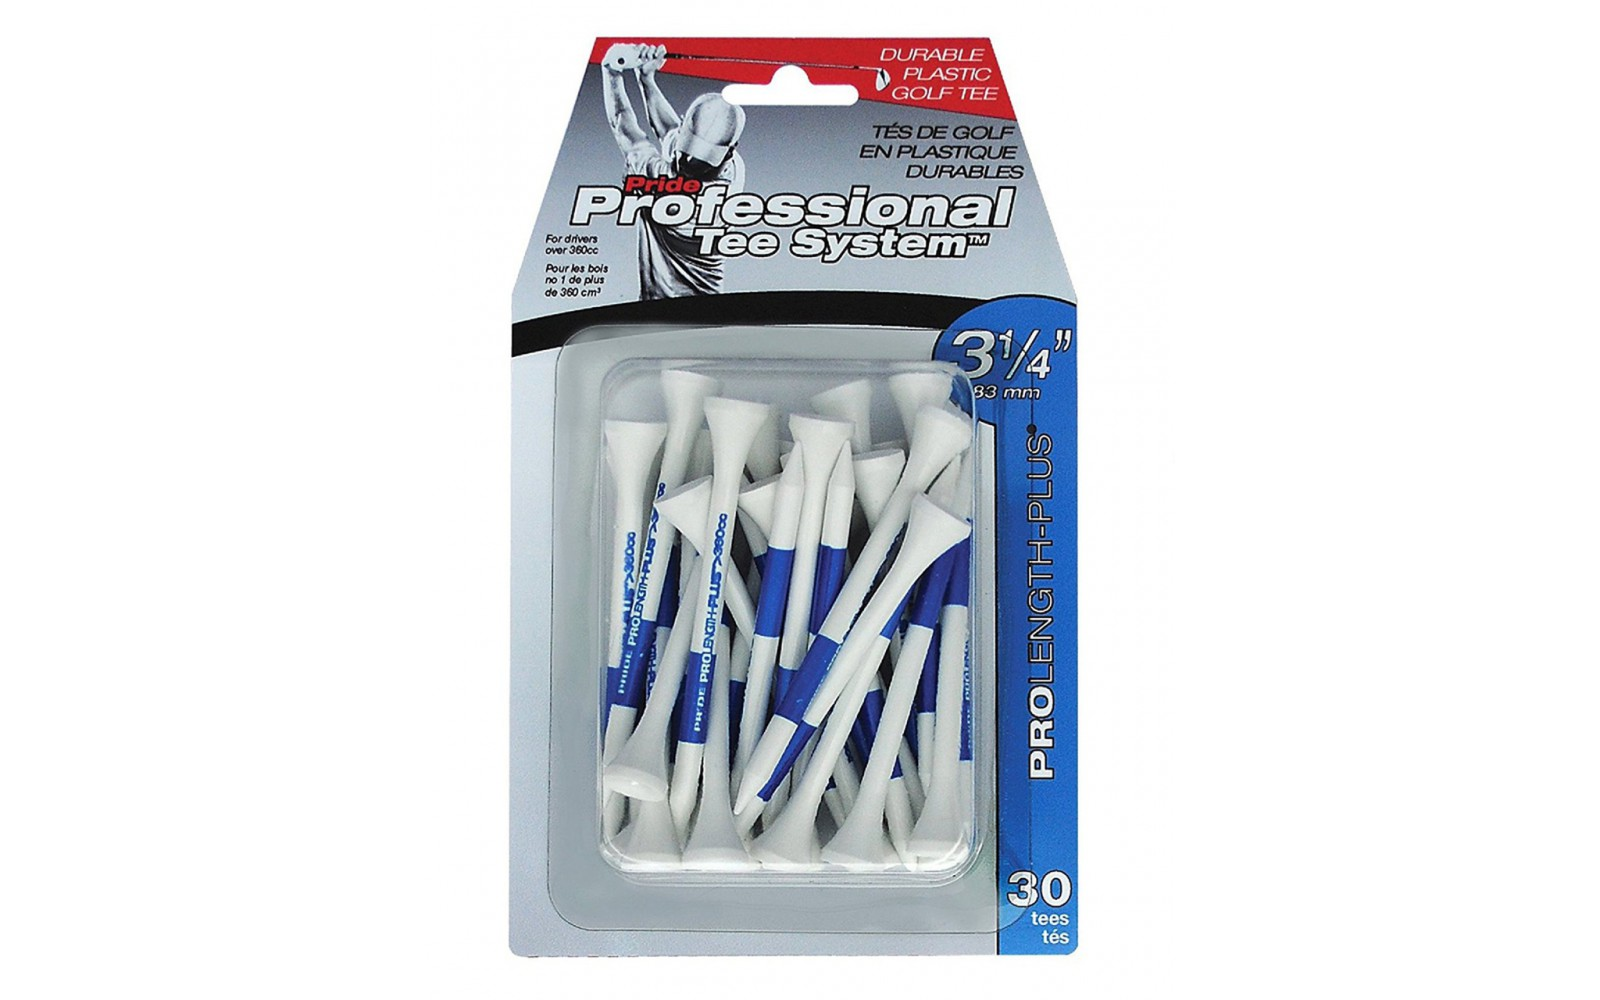 Pride Professional Tee System Tee - Blauw Blister - 30 Tees